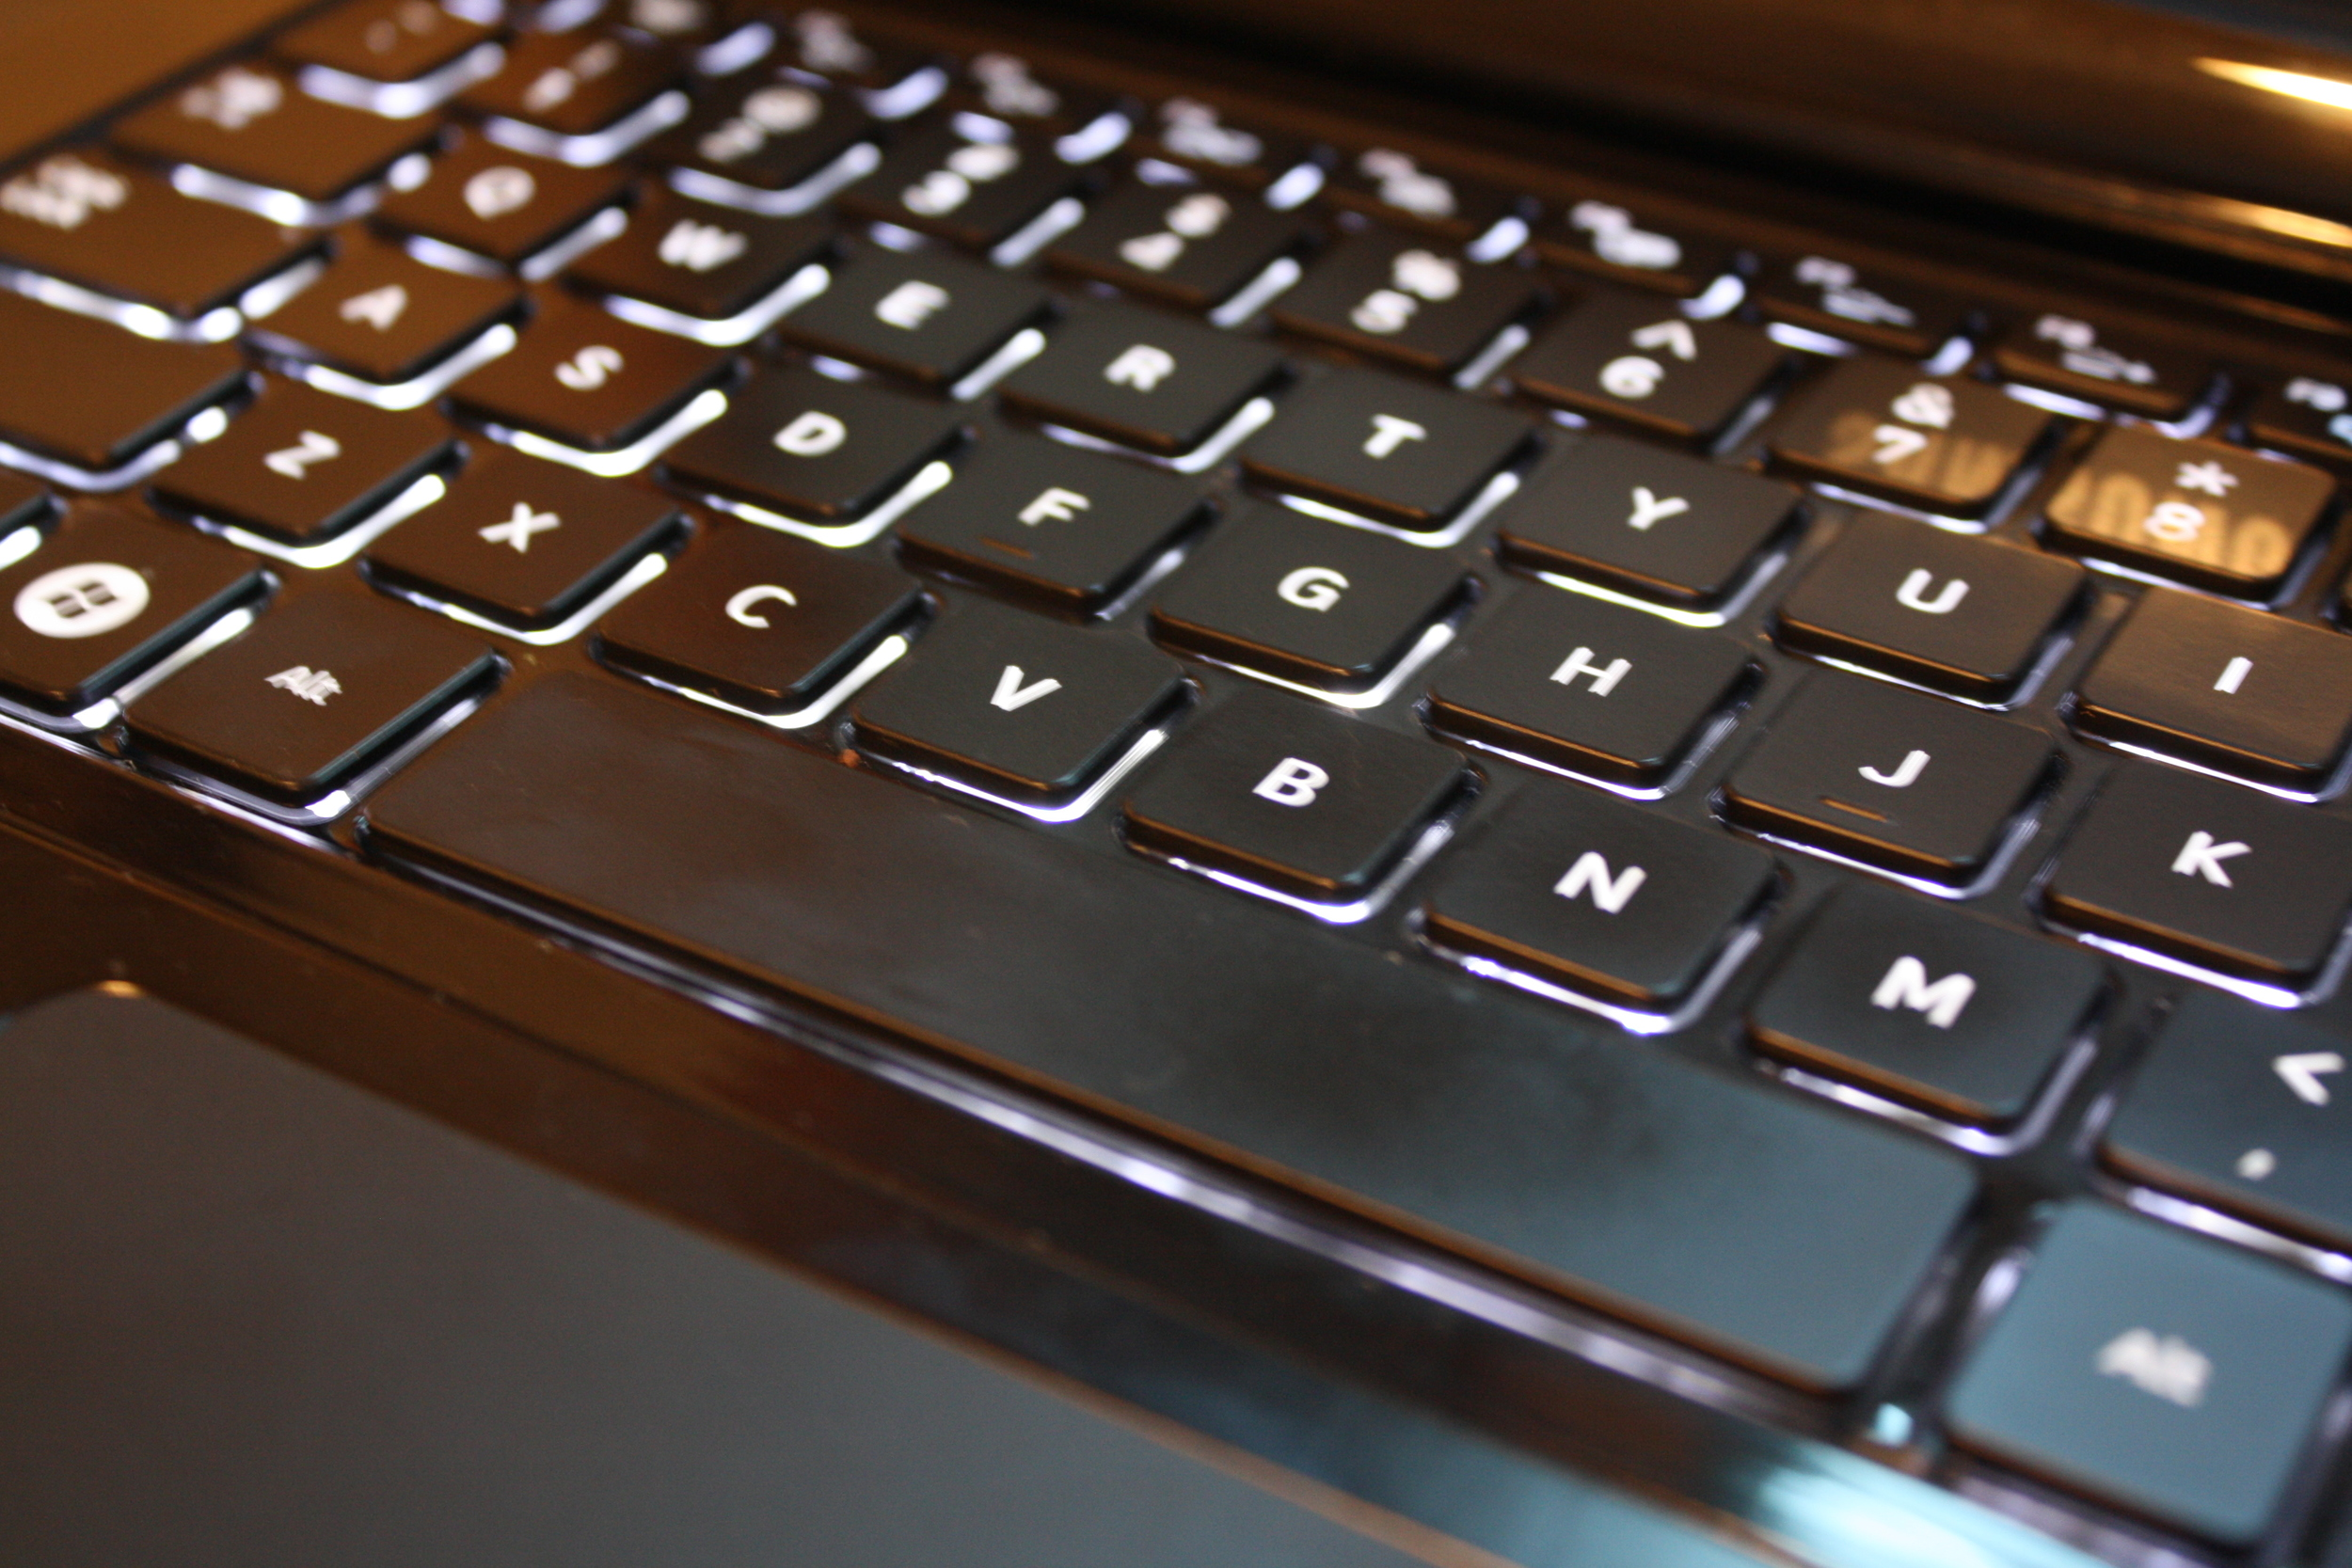 Backlighting and chiclet-style keys make me happy.